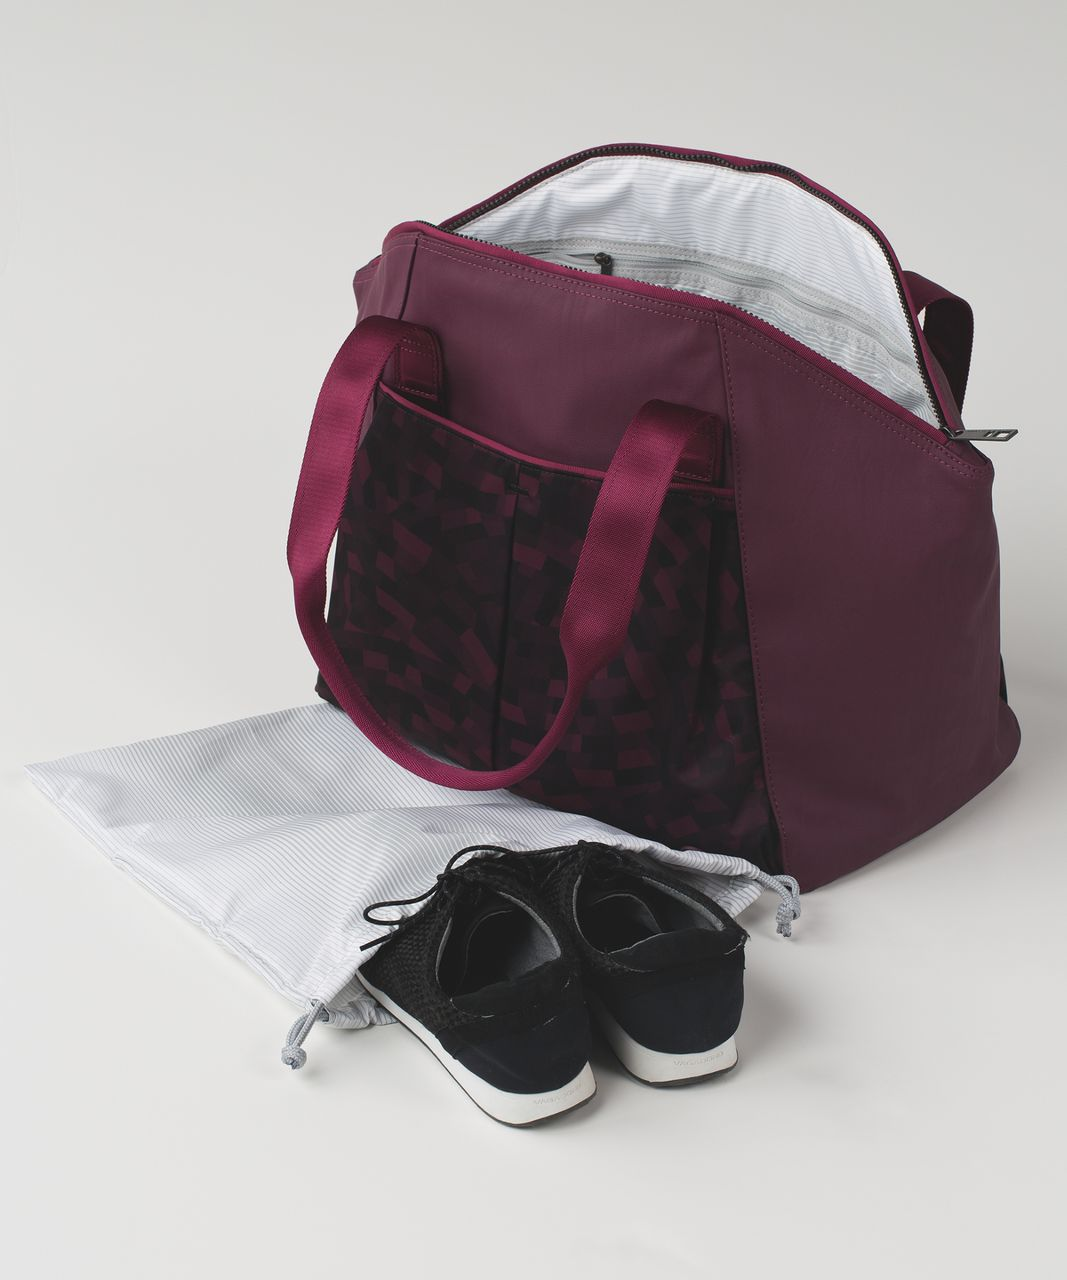 Lululemon Free to Be Bag - Capoeira Red Grape Black / Red Grape